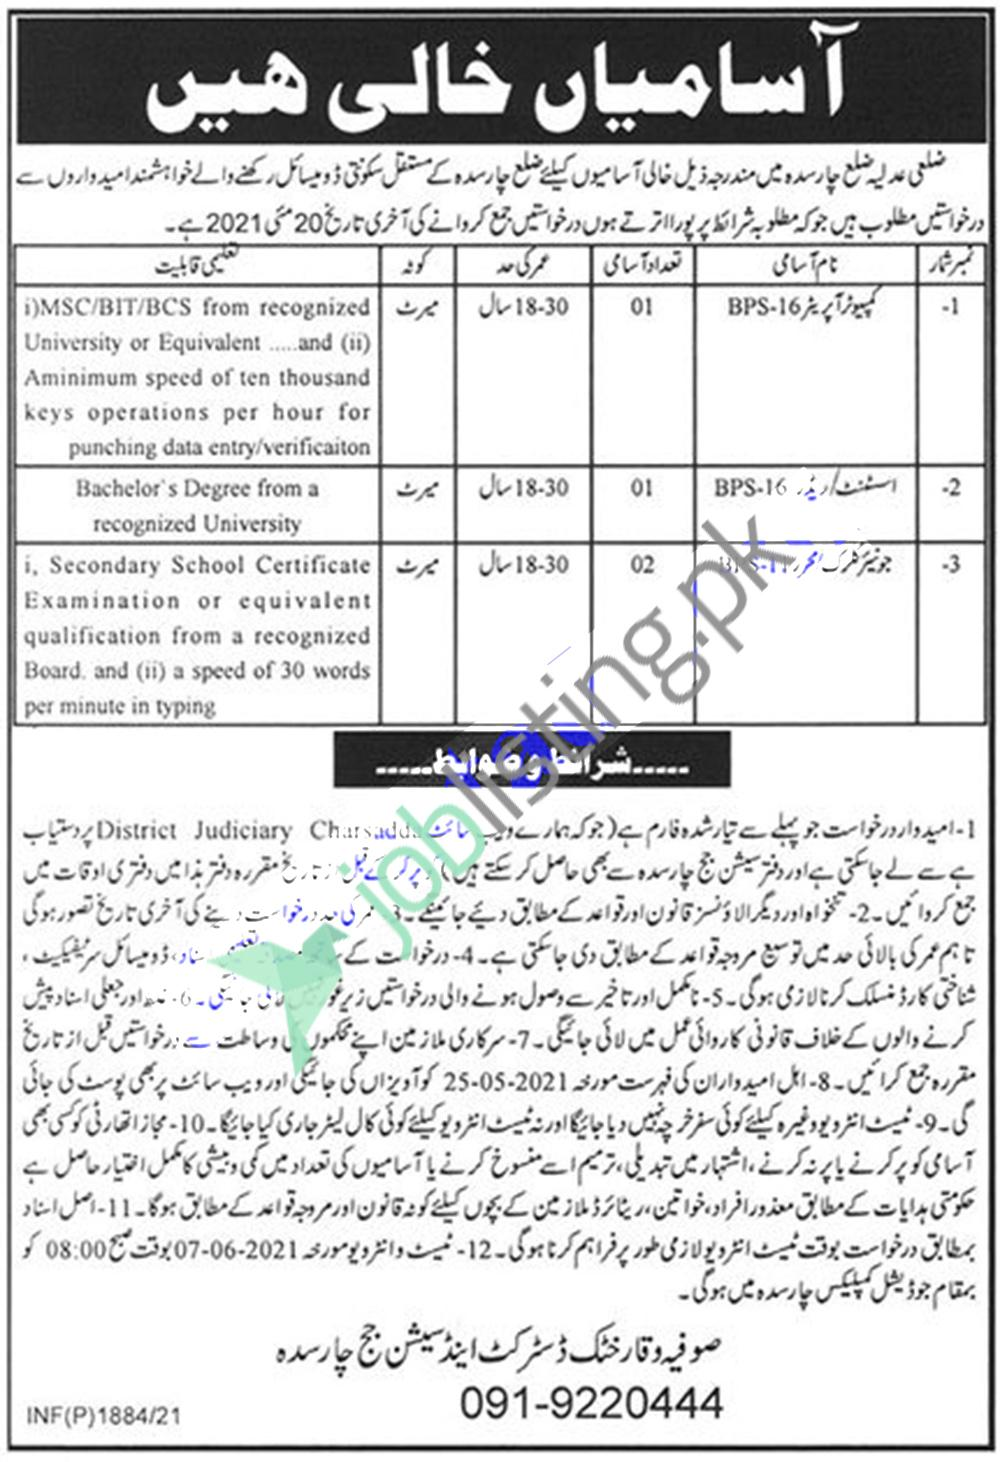 Position Vacant in District and Session Court Charsadda Jobs 2021